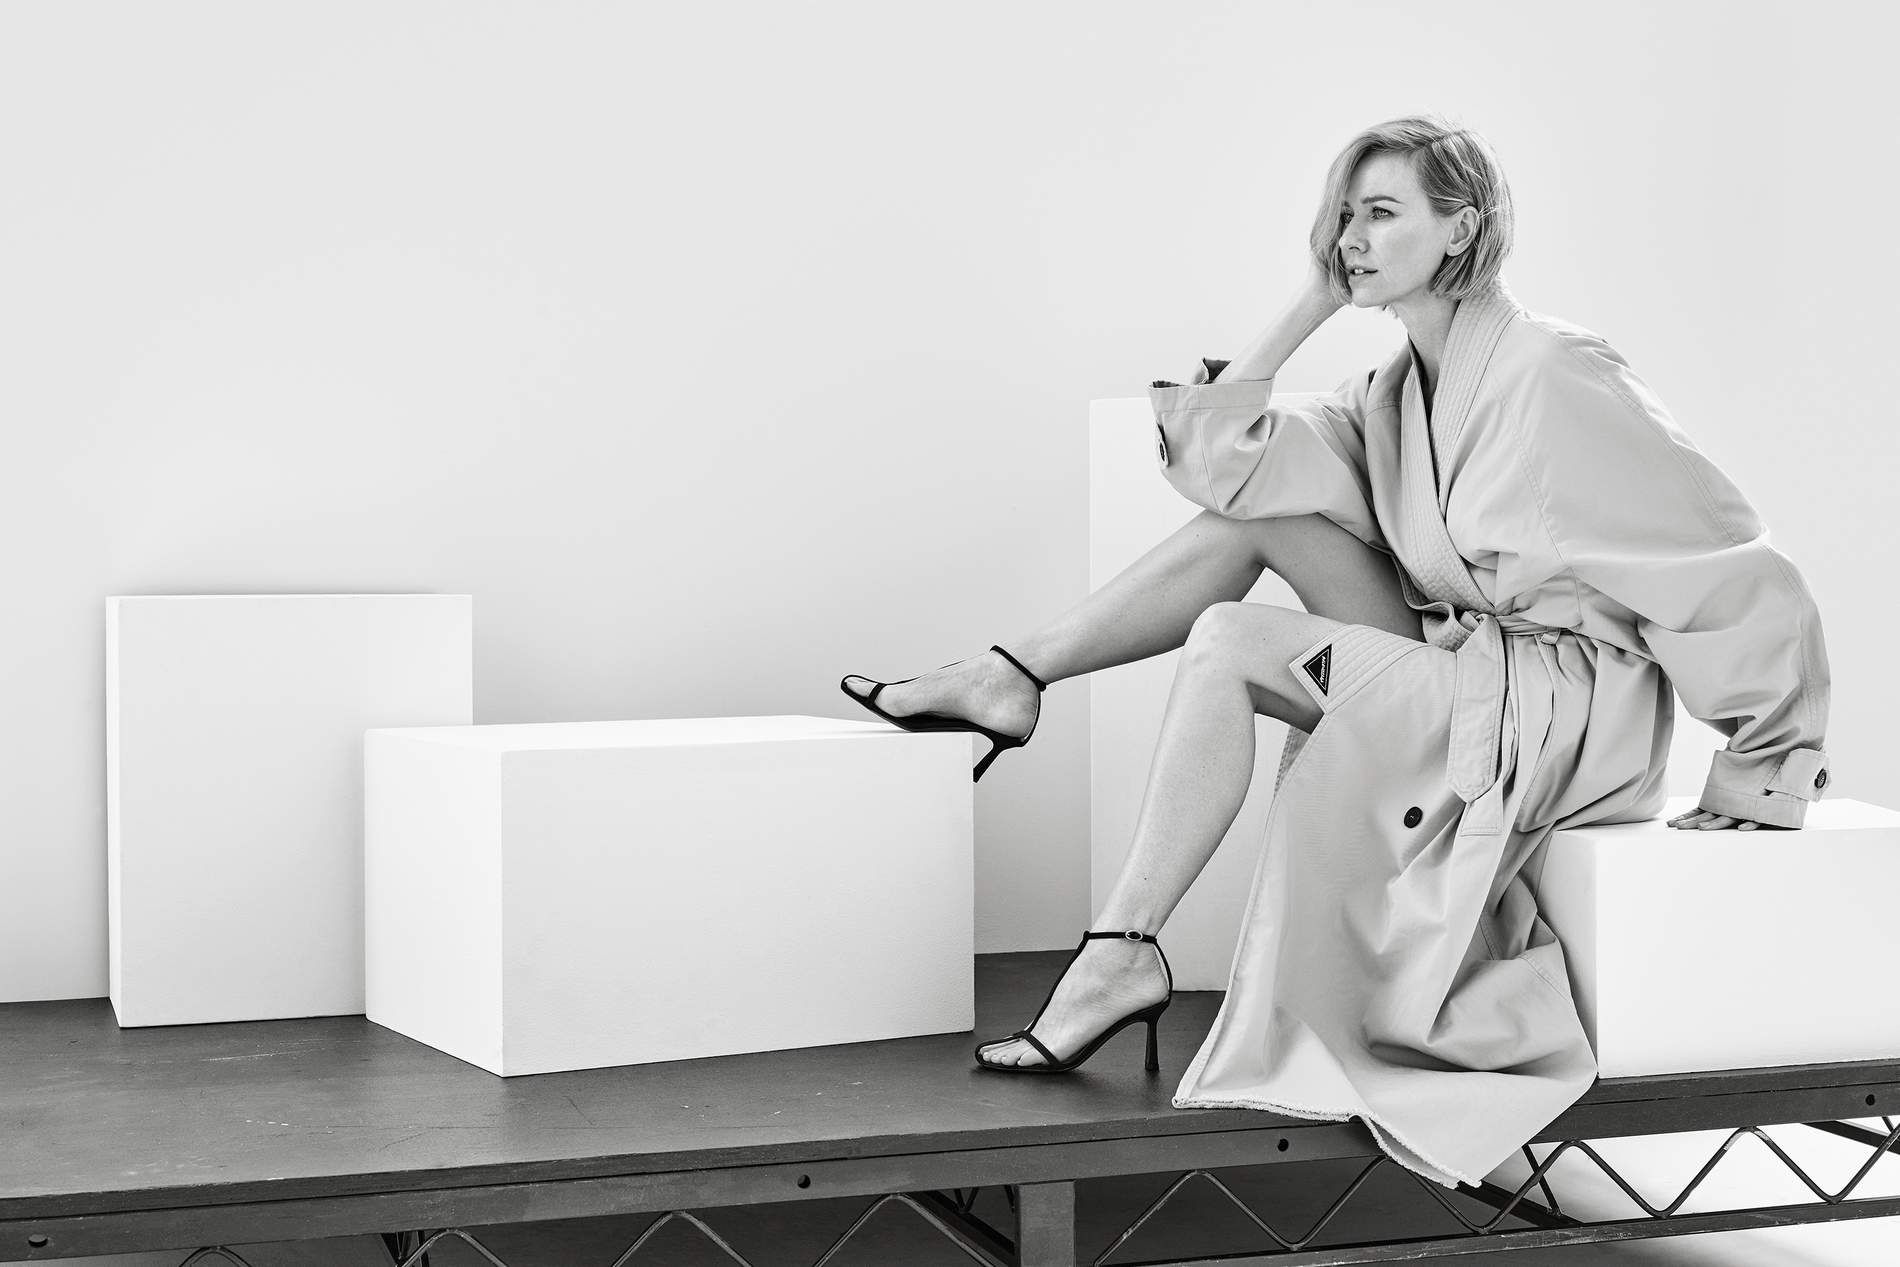 Coat Balenciaga; sandals Neous. Naomi Watts by Jason Kibler for Porter Edit Aug. 2, 2019